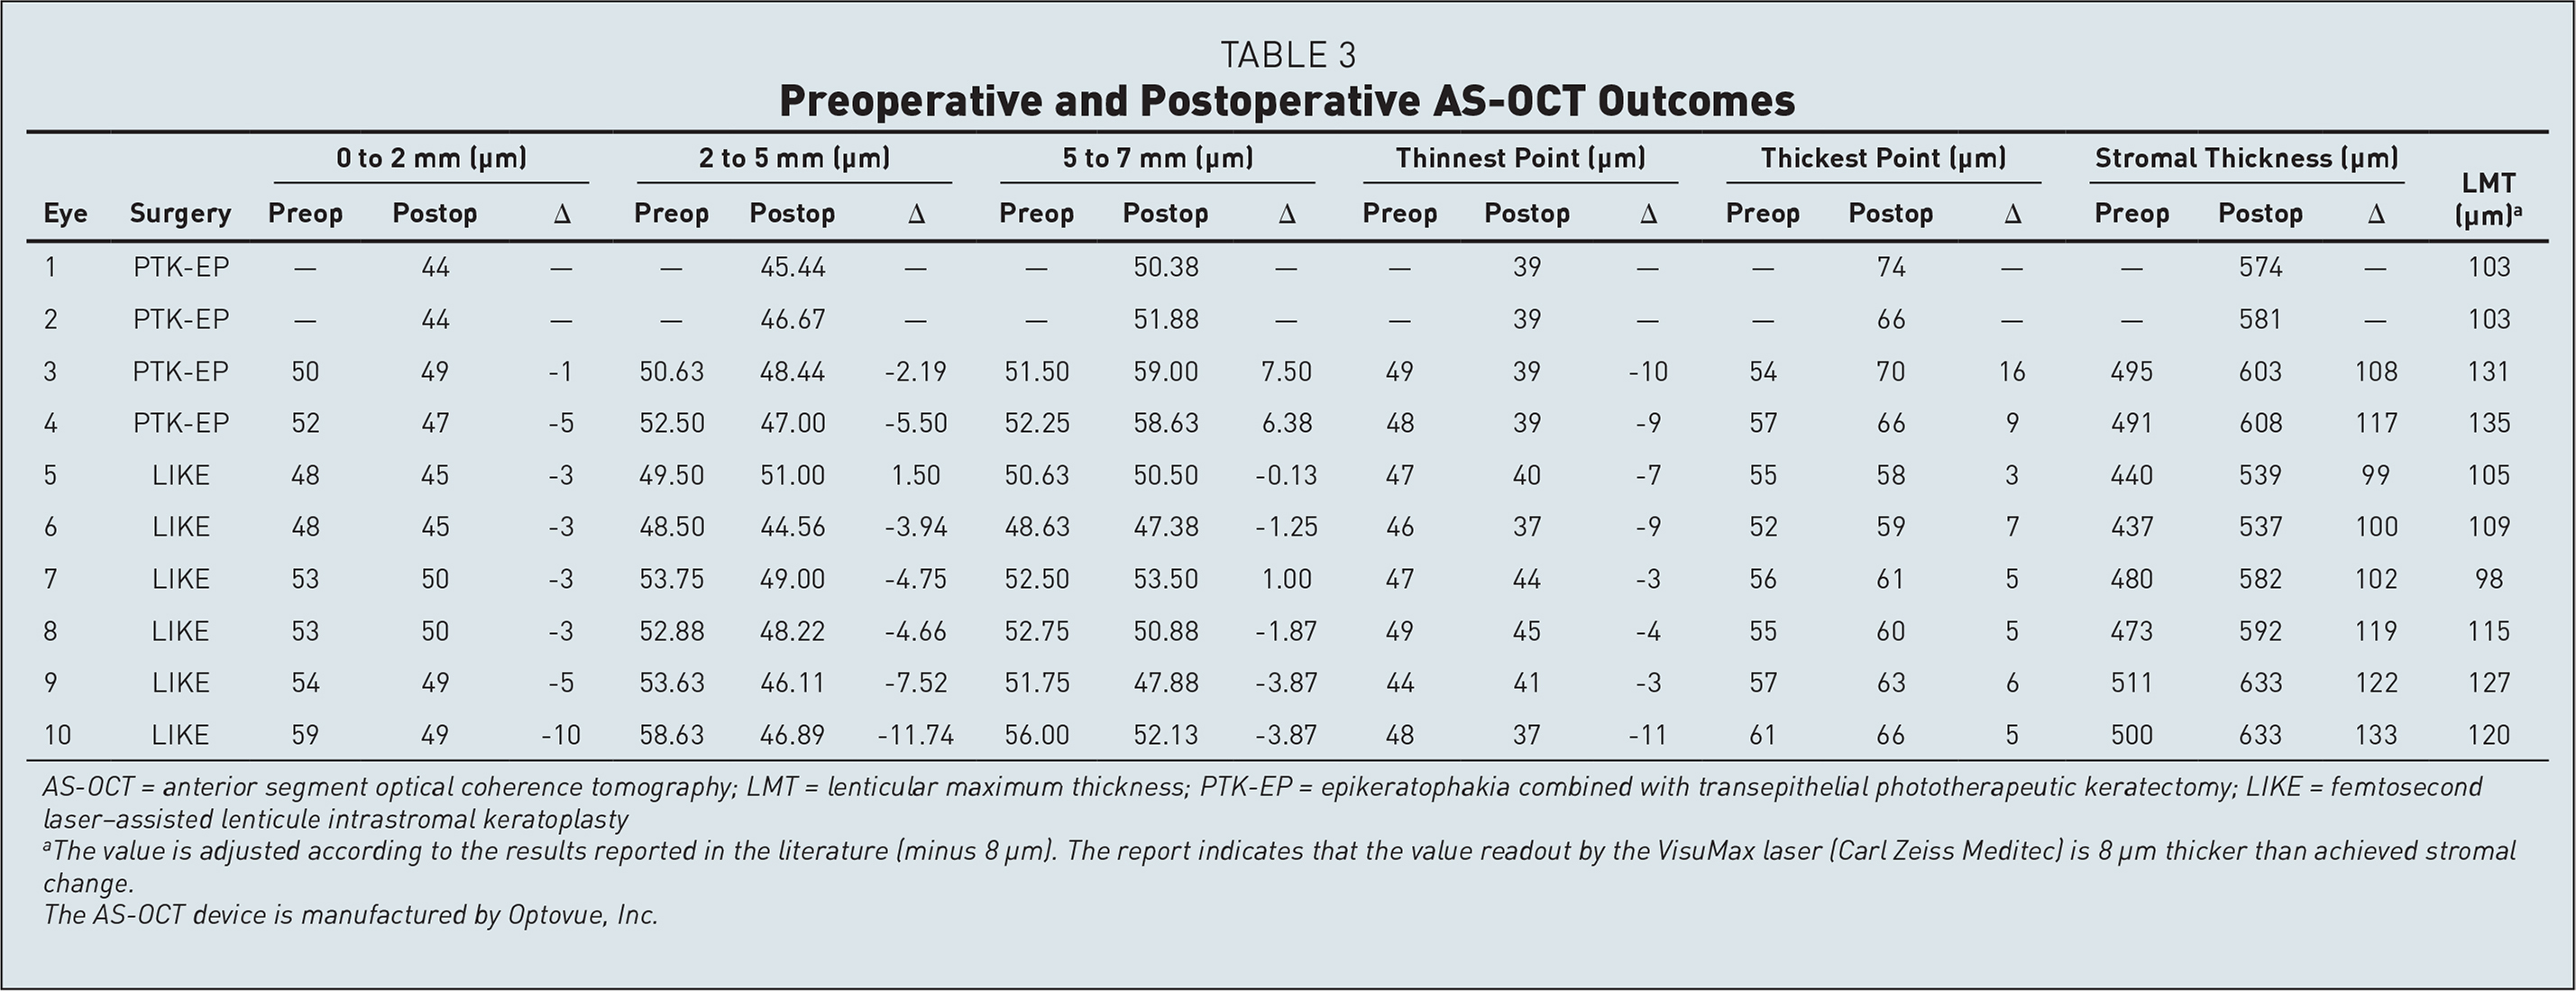 Preoperative and Postoperative AS-OCT Outcomes